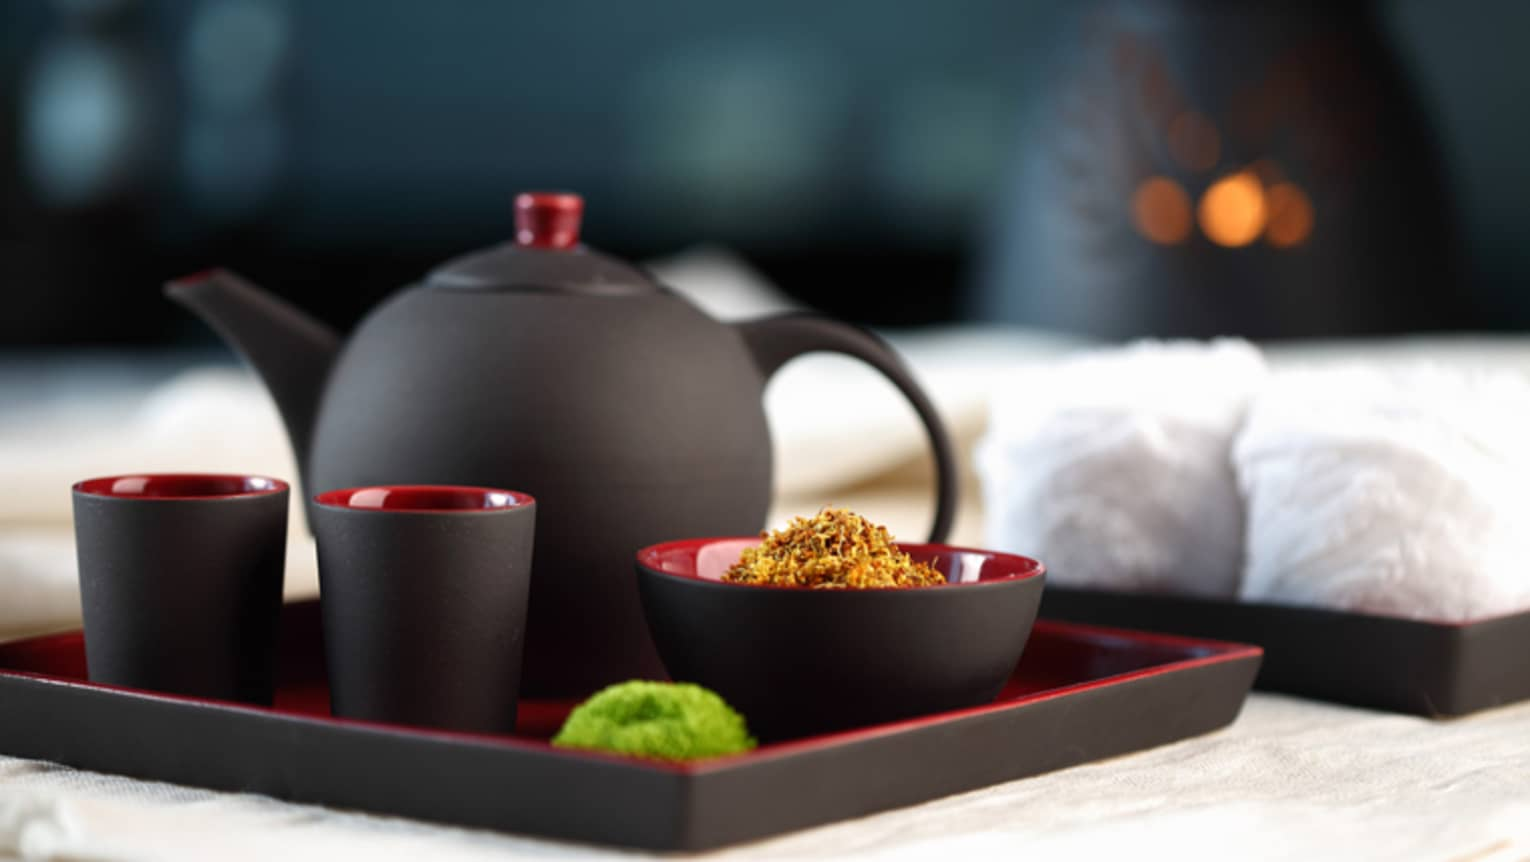 Black-and-red modern teapot with two mugs and bowl of loose-leaf chamomile on serving tray